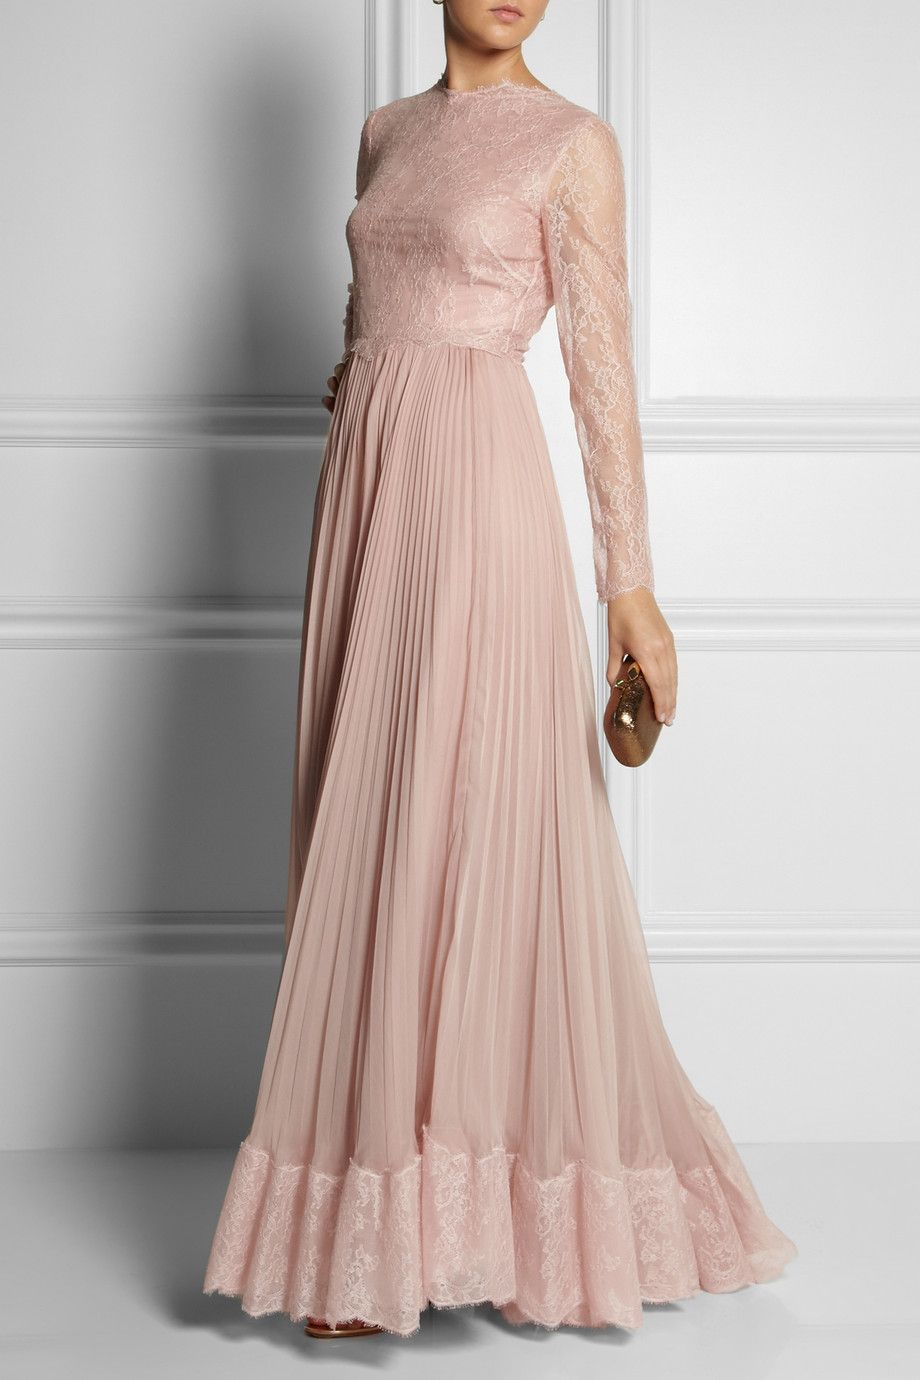 Dress for Women, Evening Cocktail Party On Sale, Pale Green, Silk, 2017, 10 8 Valentino